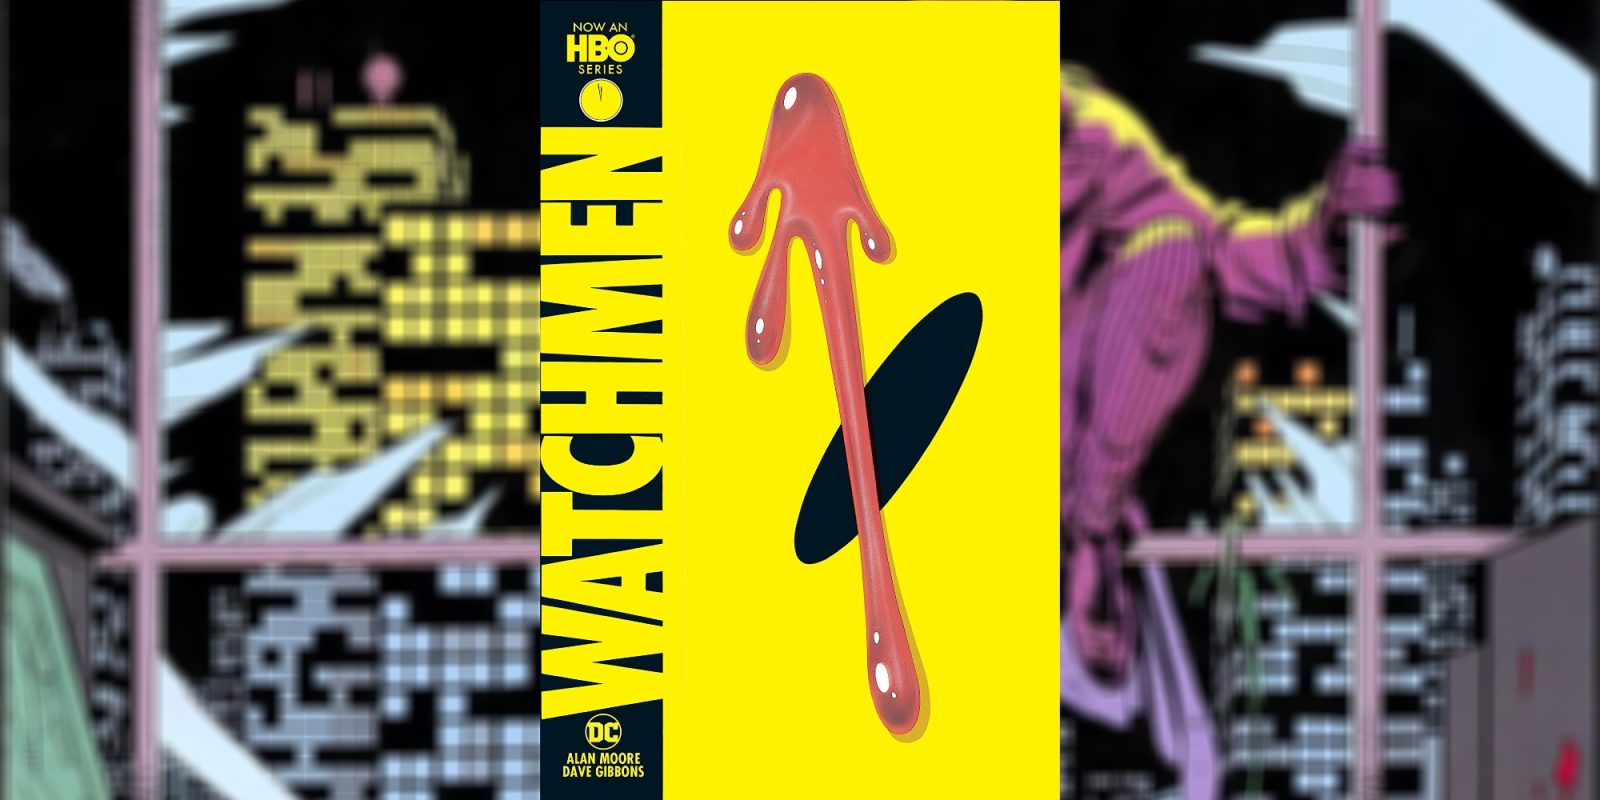 Ahead of the HBO premiere, Watchmen drops to $6 at ComiXology + more from $1